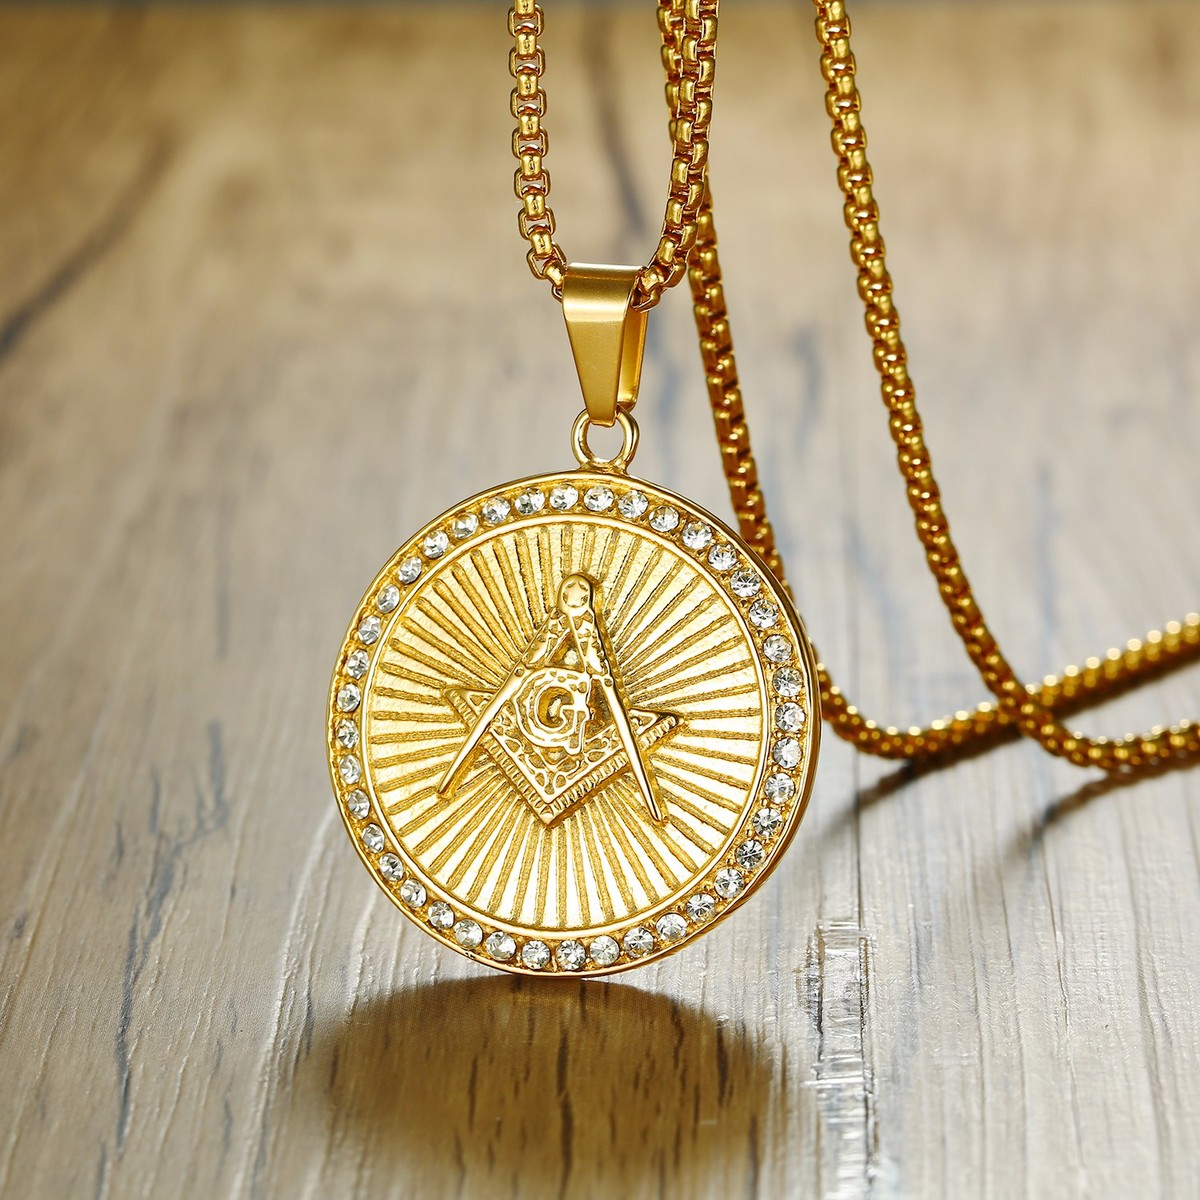 pattern pyramid mens medallion pin necklace gold clear chain ebay rope pendant